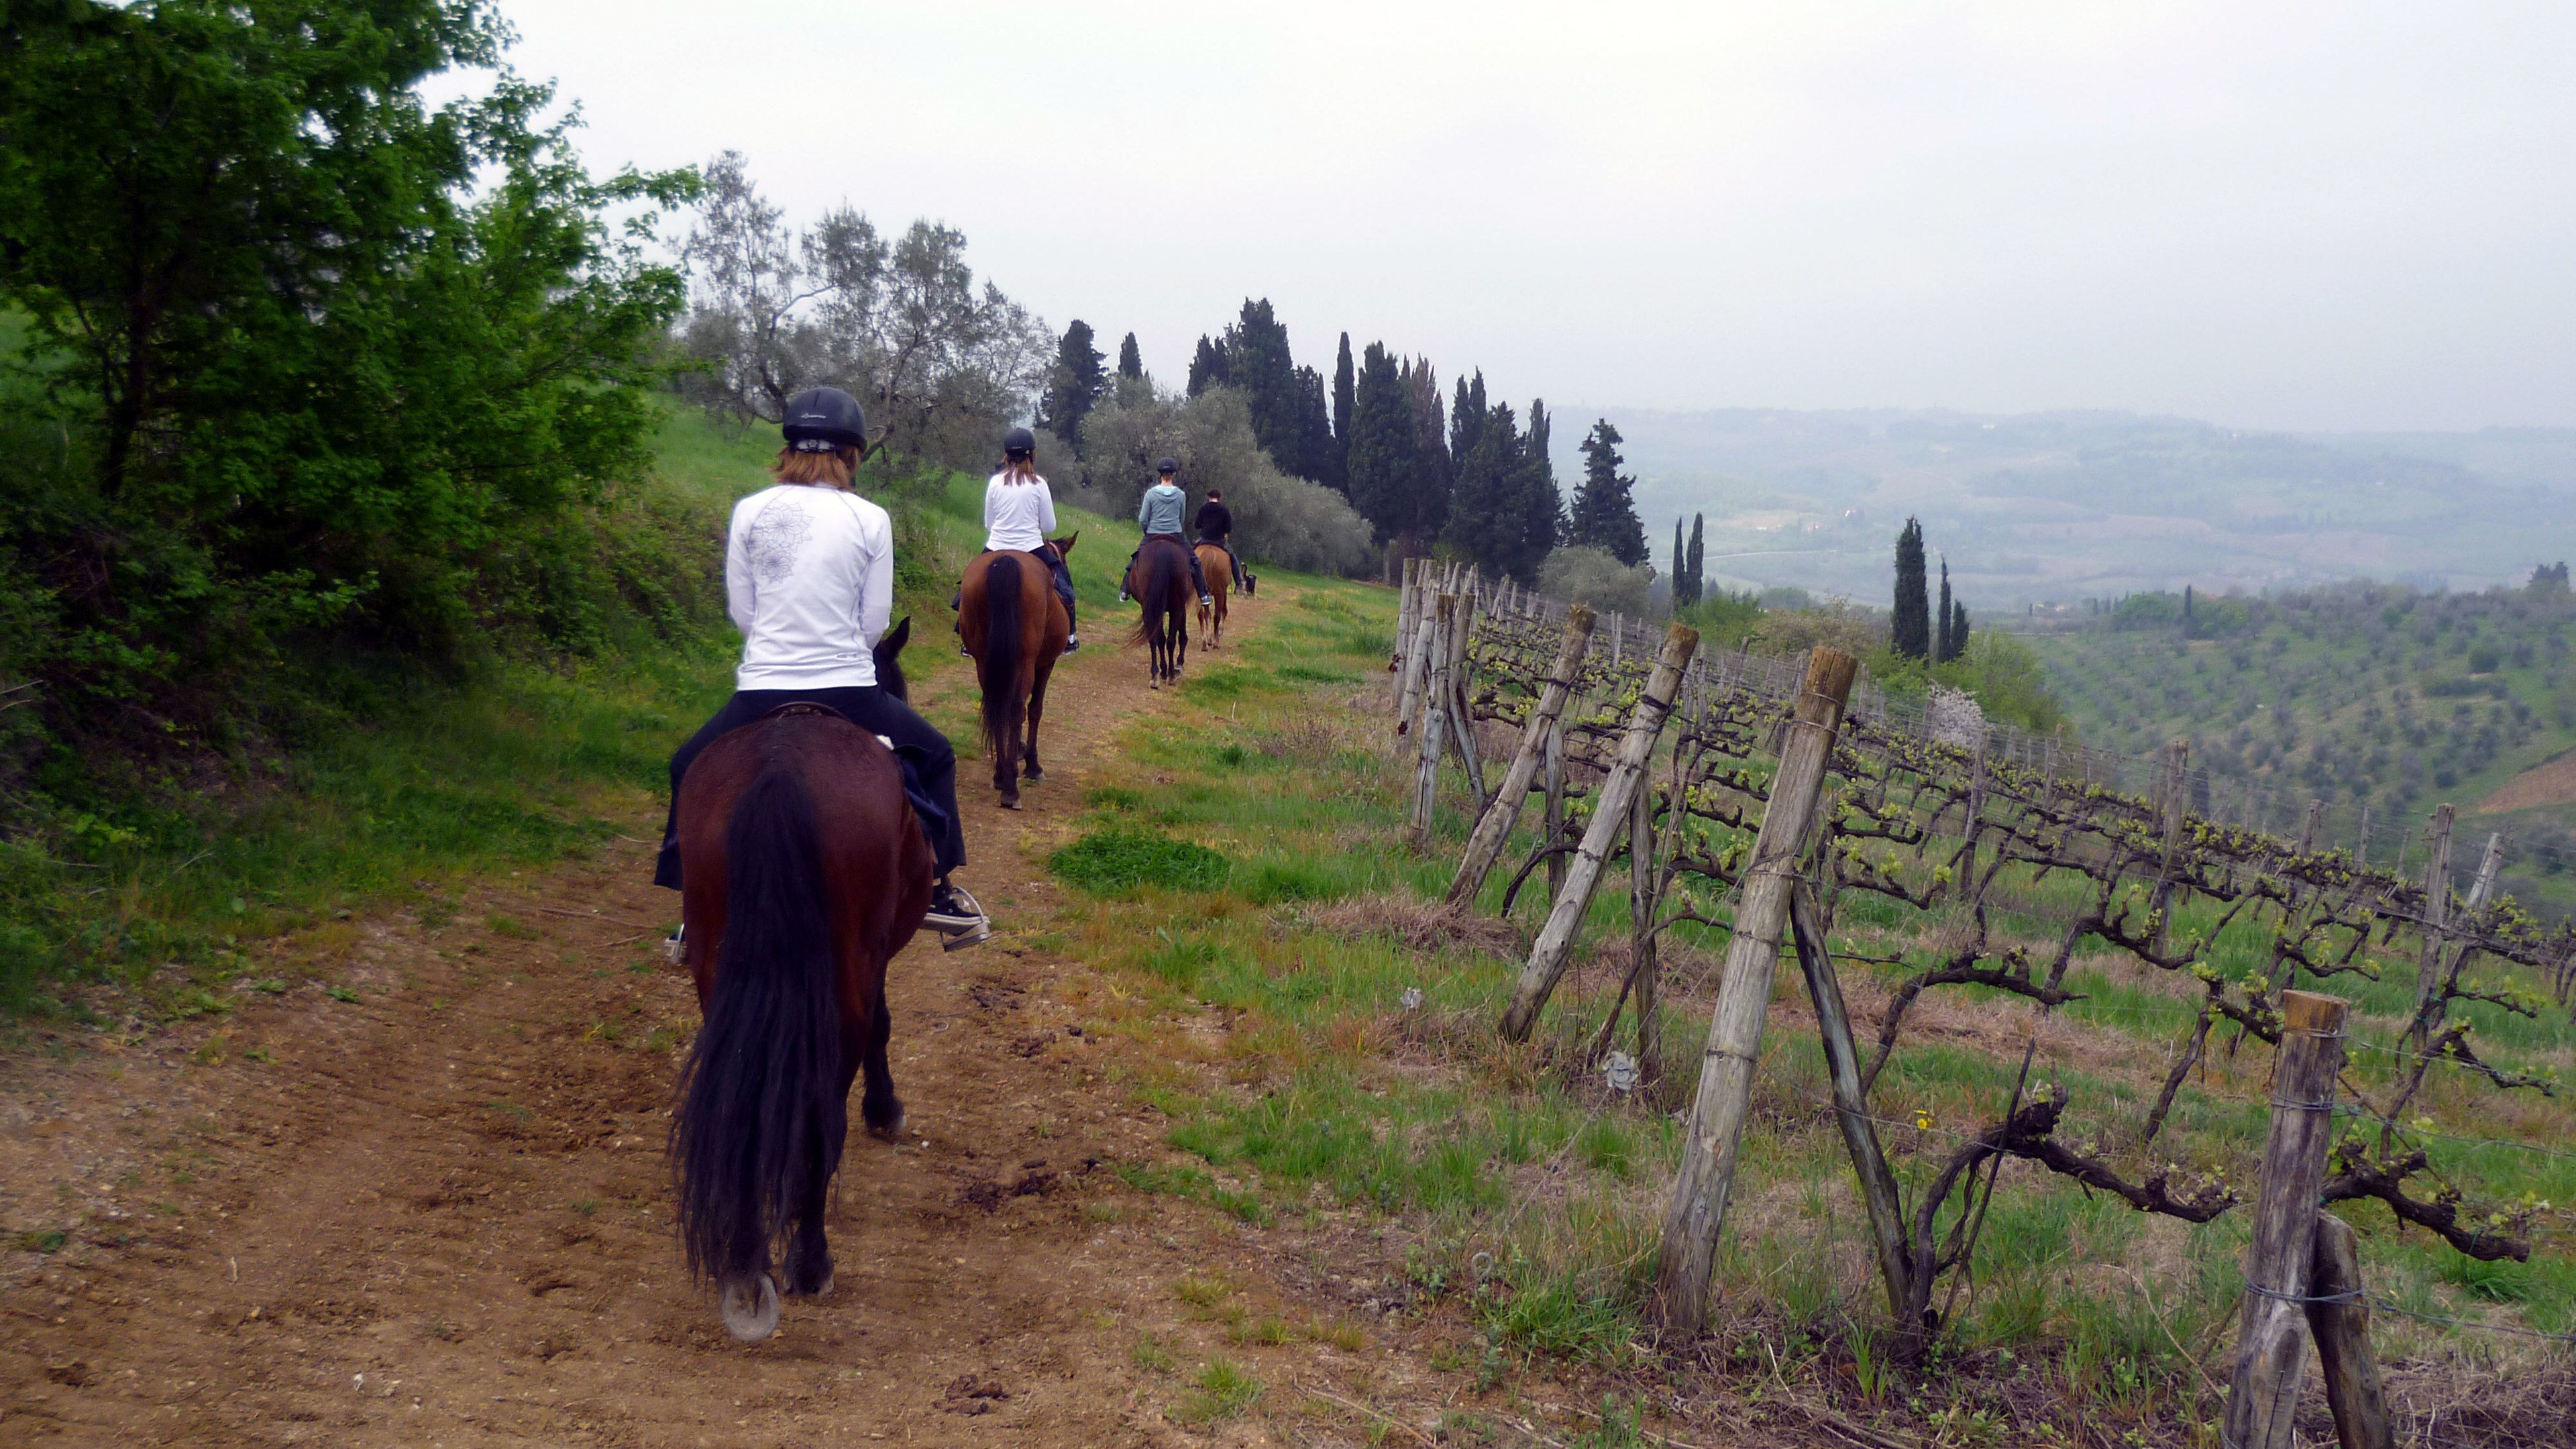 Horses on trail in Tuscany in Italy